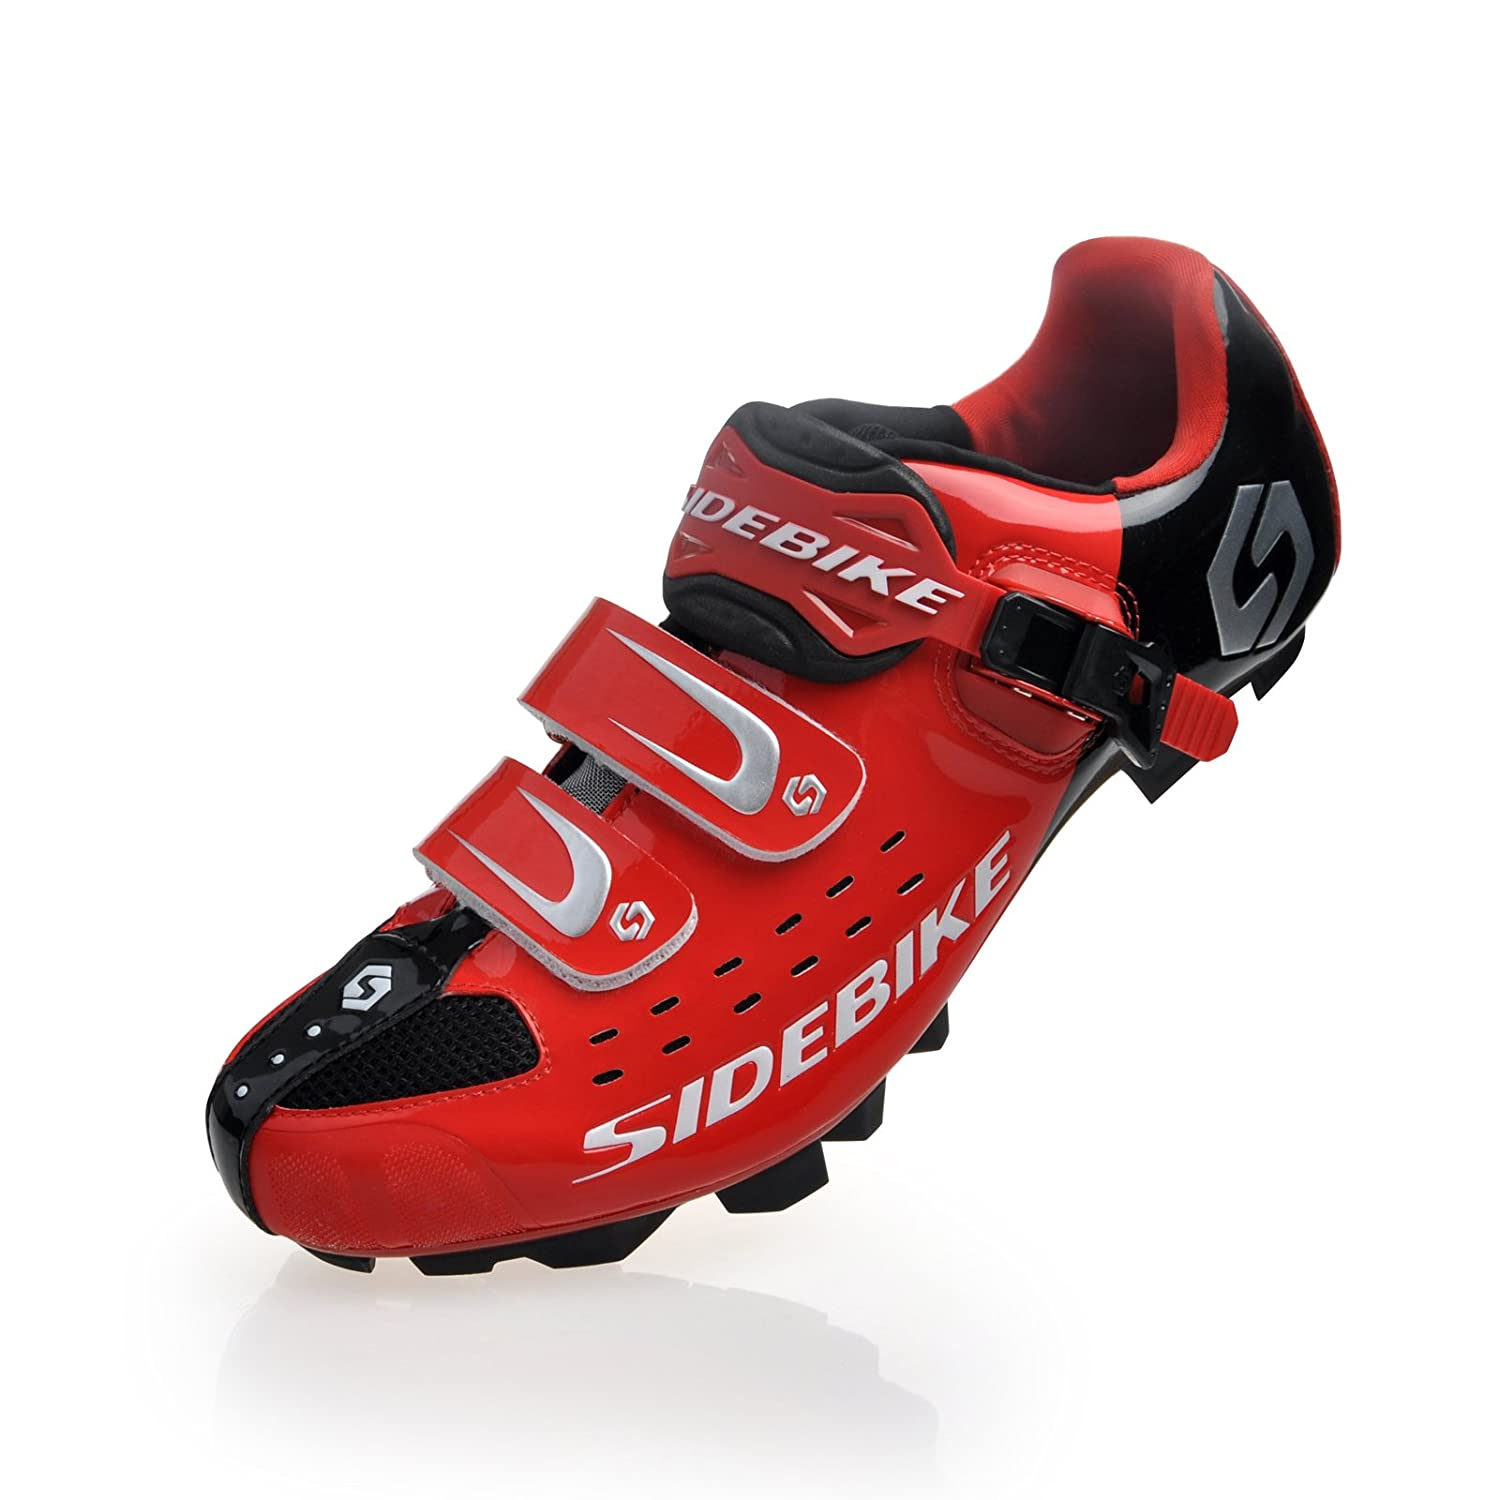 Smartodoors Cycling Shoes with Carbon Soles or Nylon Tpu Soles for Road and MTB B00O0S9XCO US13/EU46/Ft29cm|SD01-MTB-Black/red